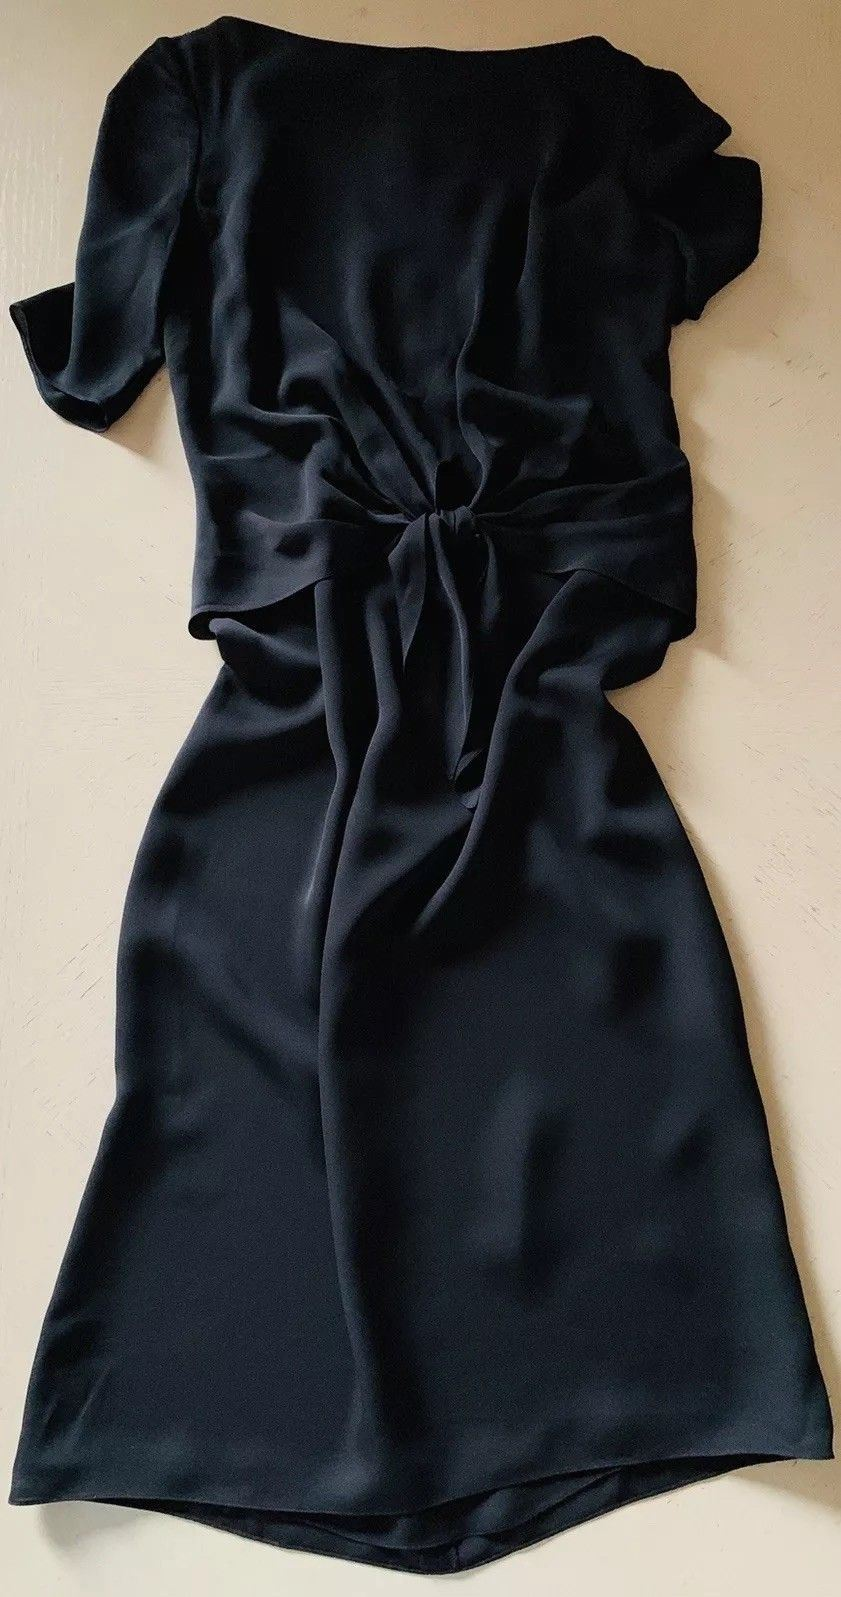 New $1690 Ralph Lauren Purple Label Dresses Dark Black Size 6 US Made In USA